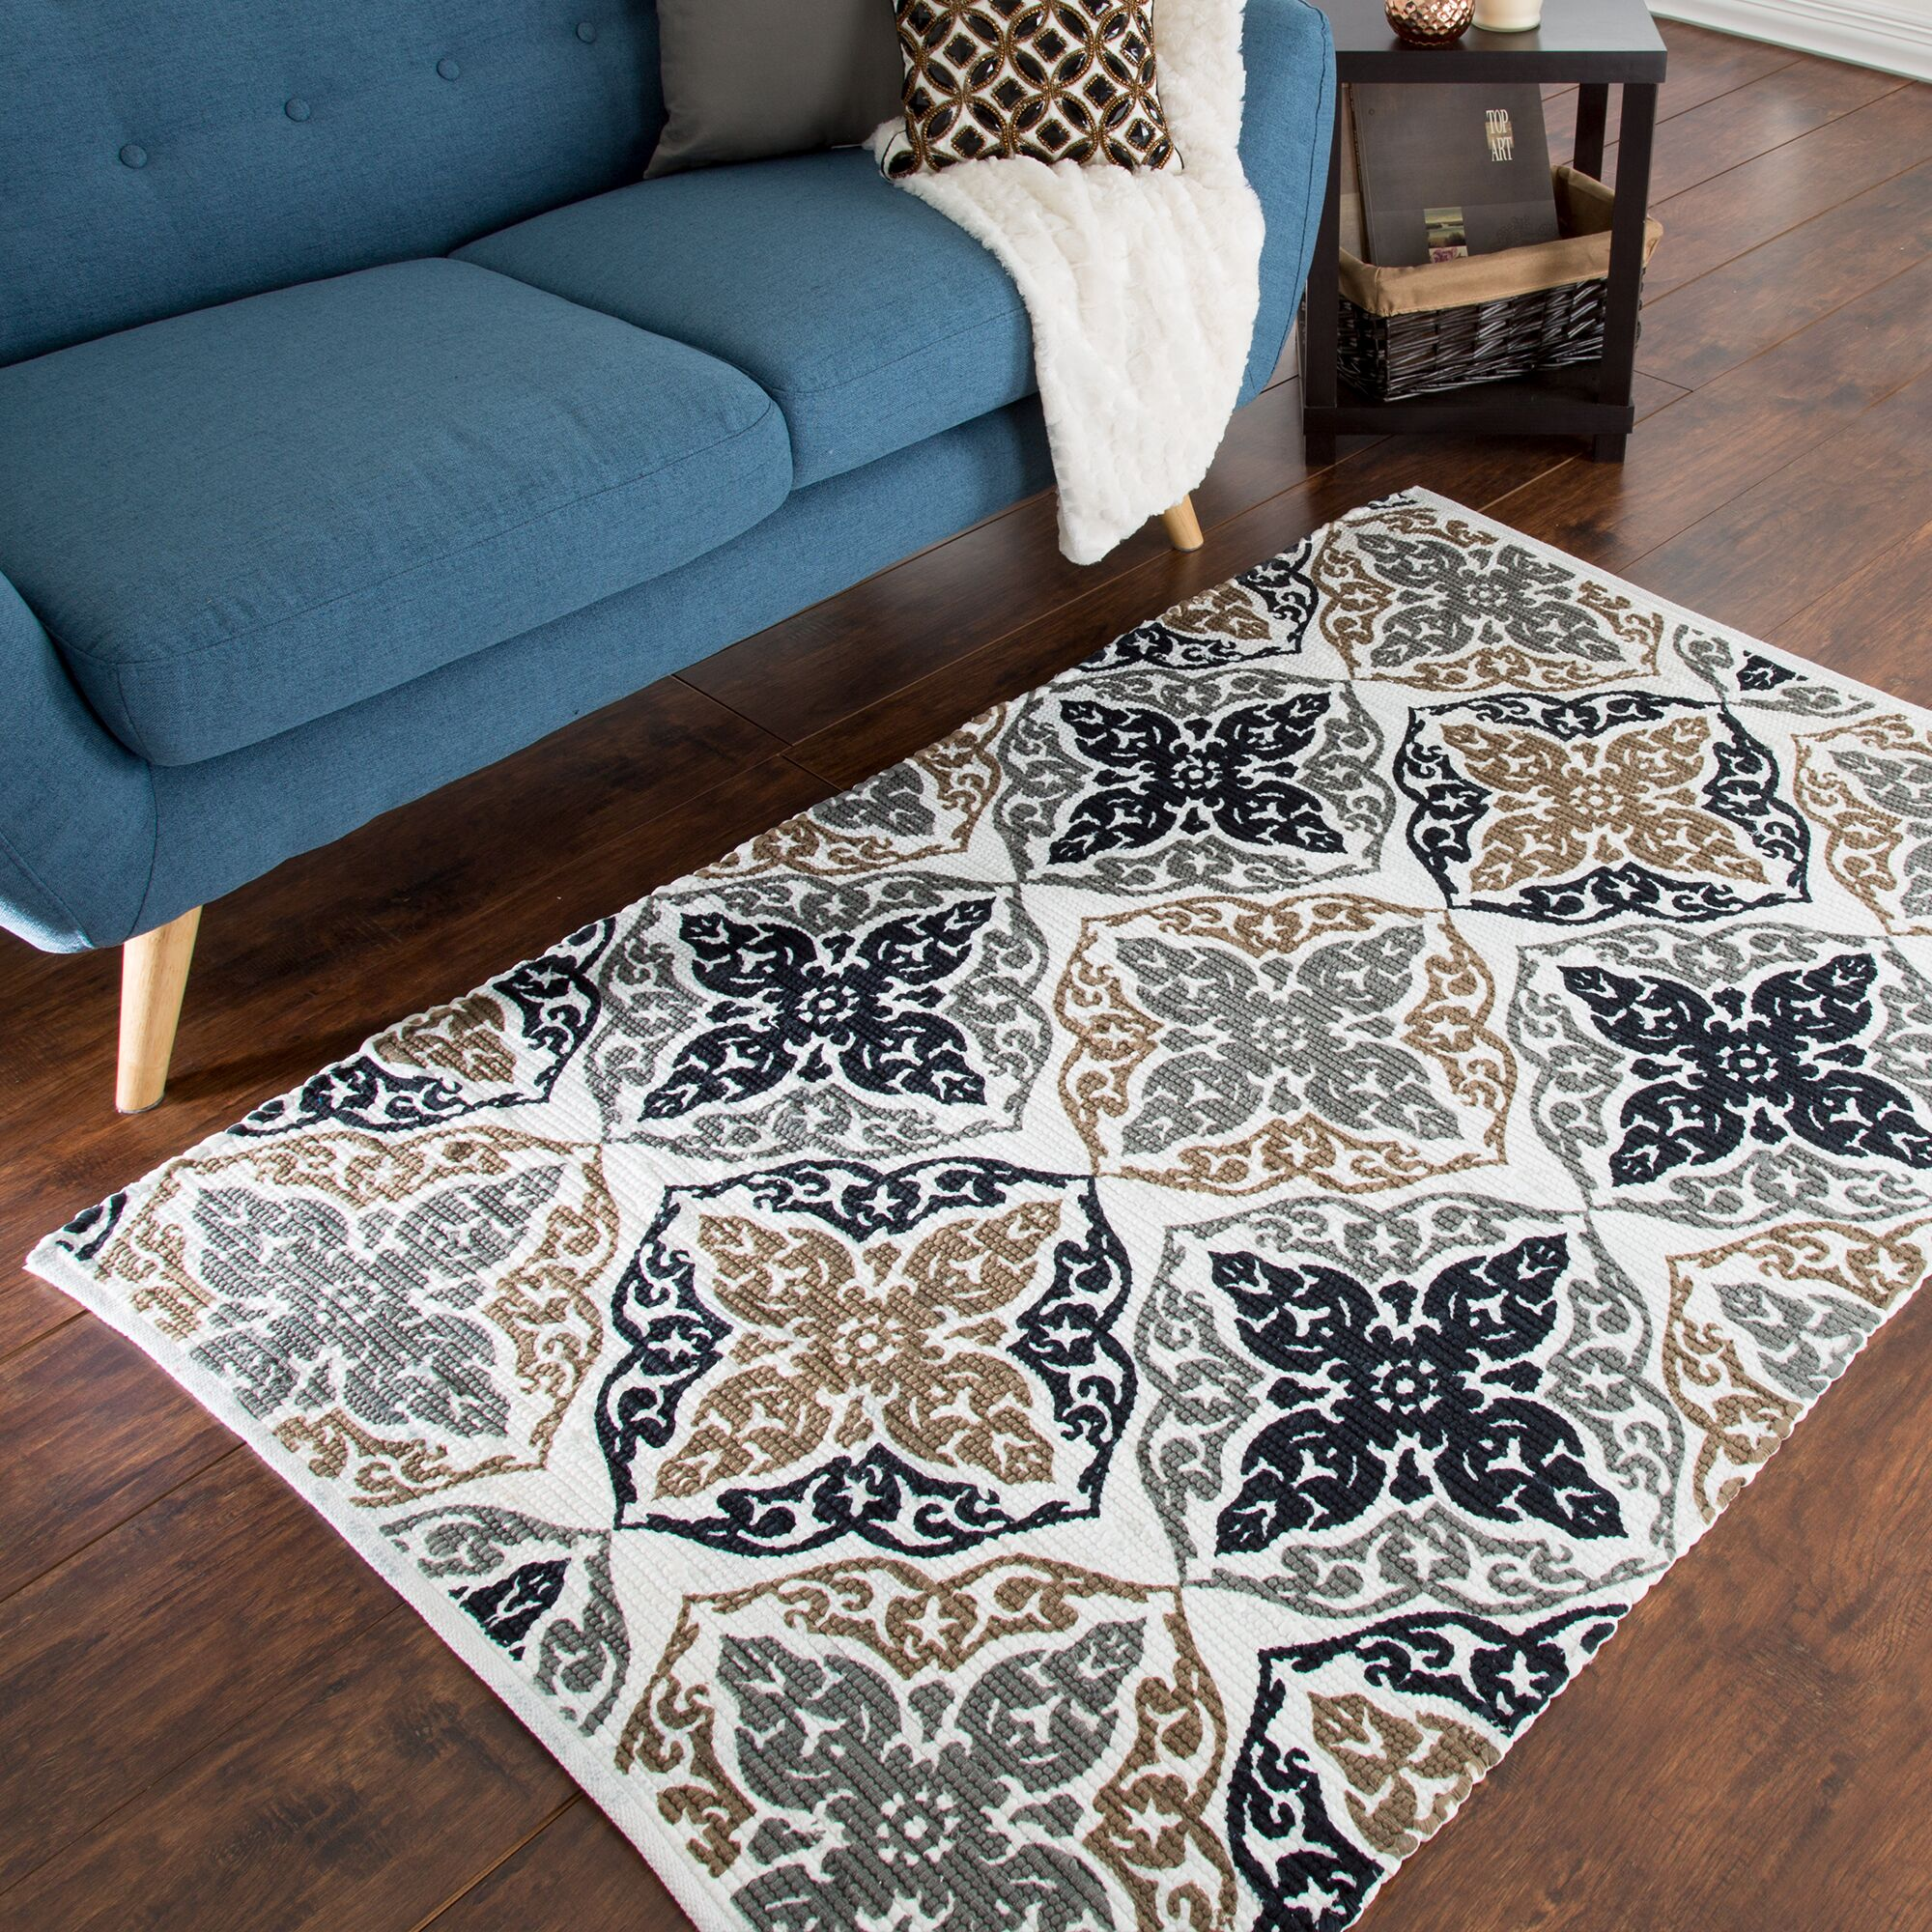 Roche Damask Motif Accent Hand-Woven Black Area Rug